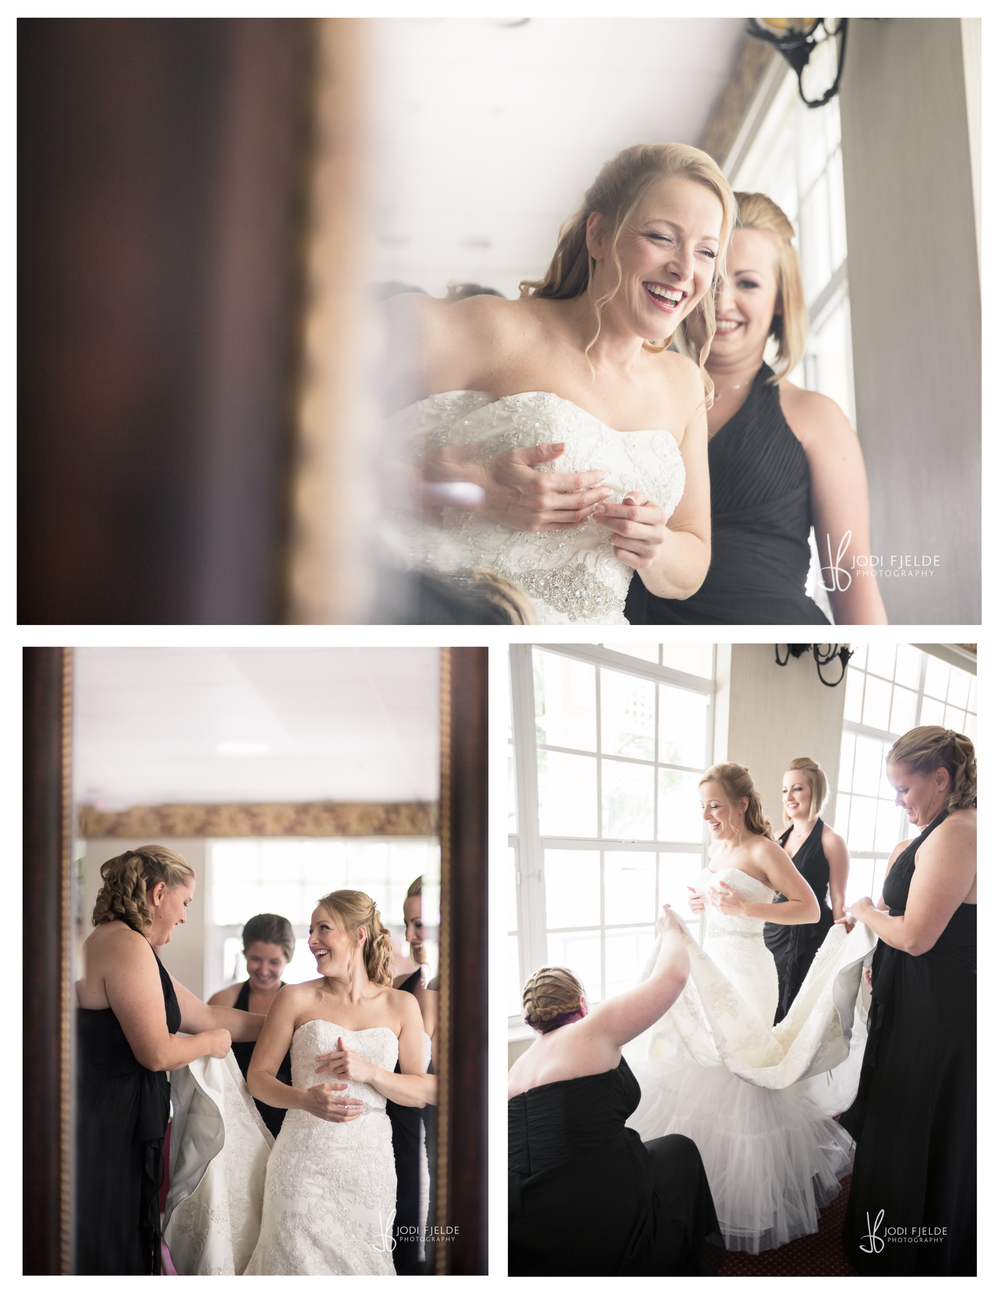 Morikami_Delray_Beach_Golf_Club_Wedding_Jenna & Brian 8.jpg